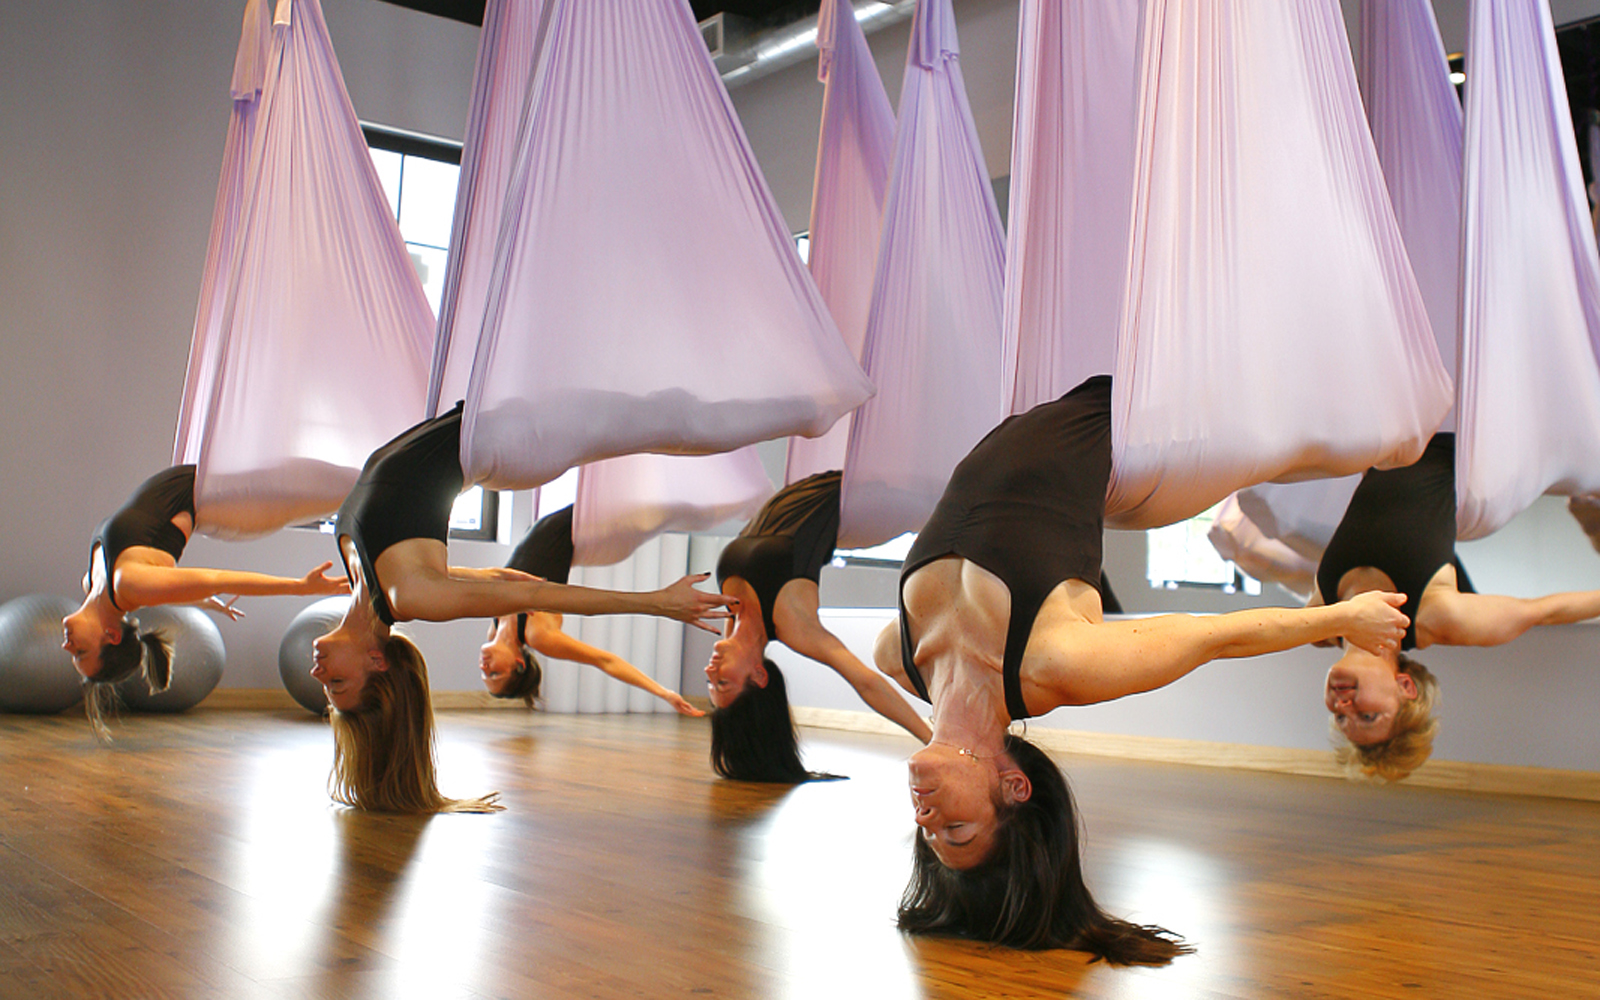 yoga them arts kids camps secure a aerial explore it s is hammock environment kaya energetic camp safe fun and for children summer place also to